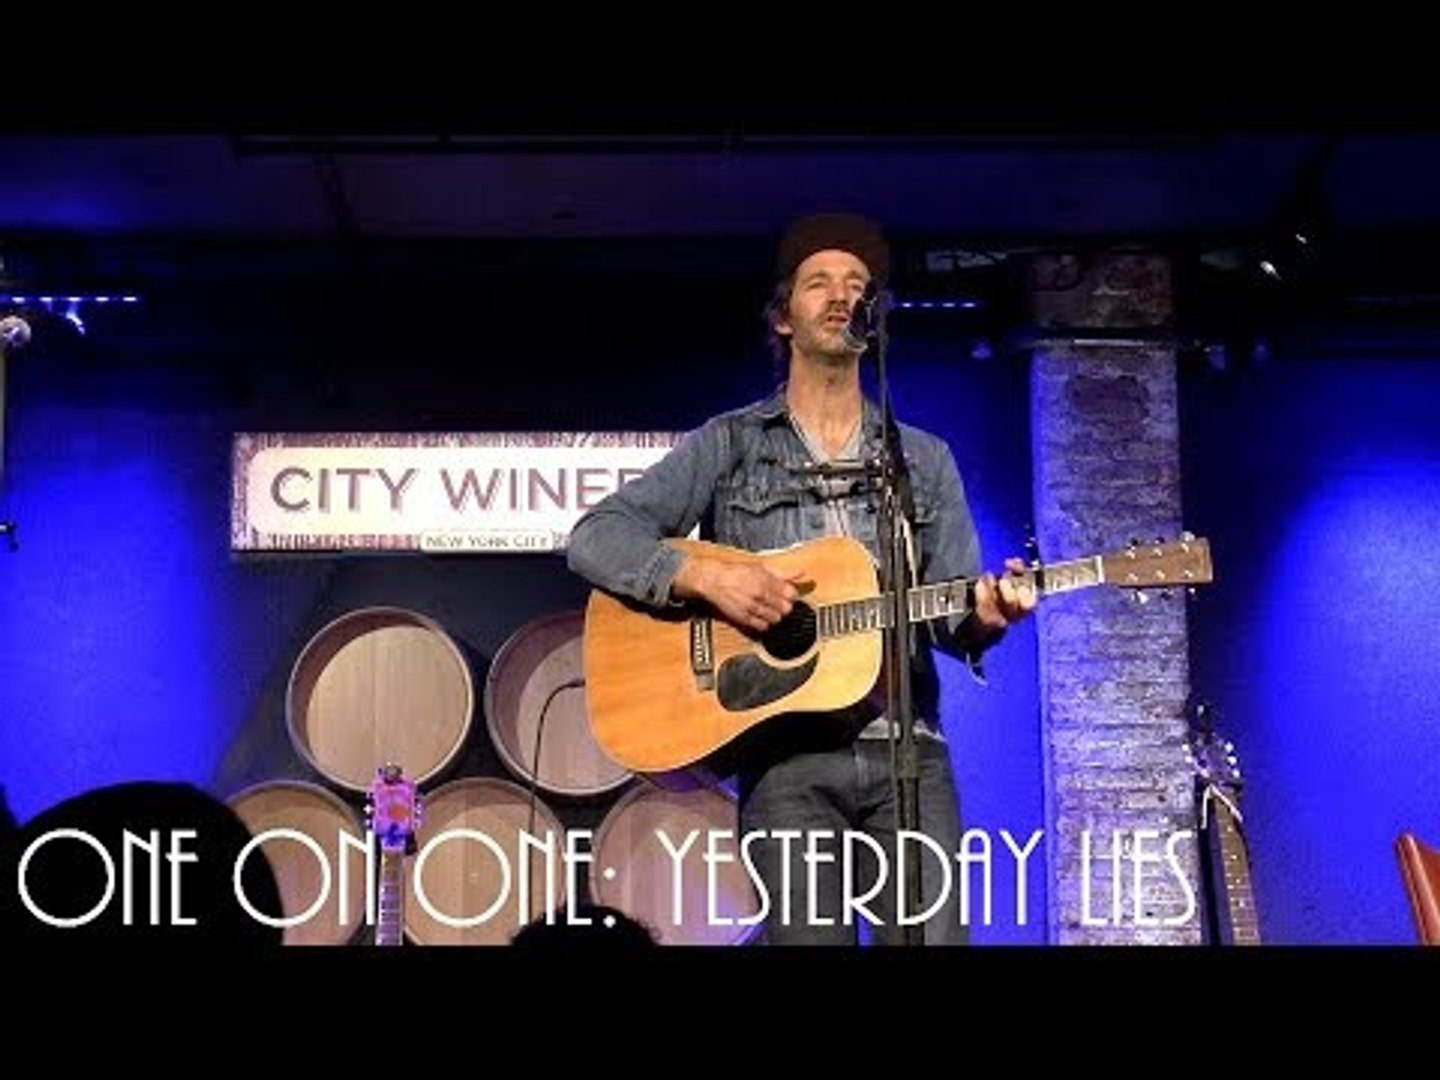 ONE ON ONE: Griffin House - Yesterday Lies February 13th, 2018 City Winery New York